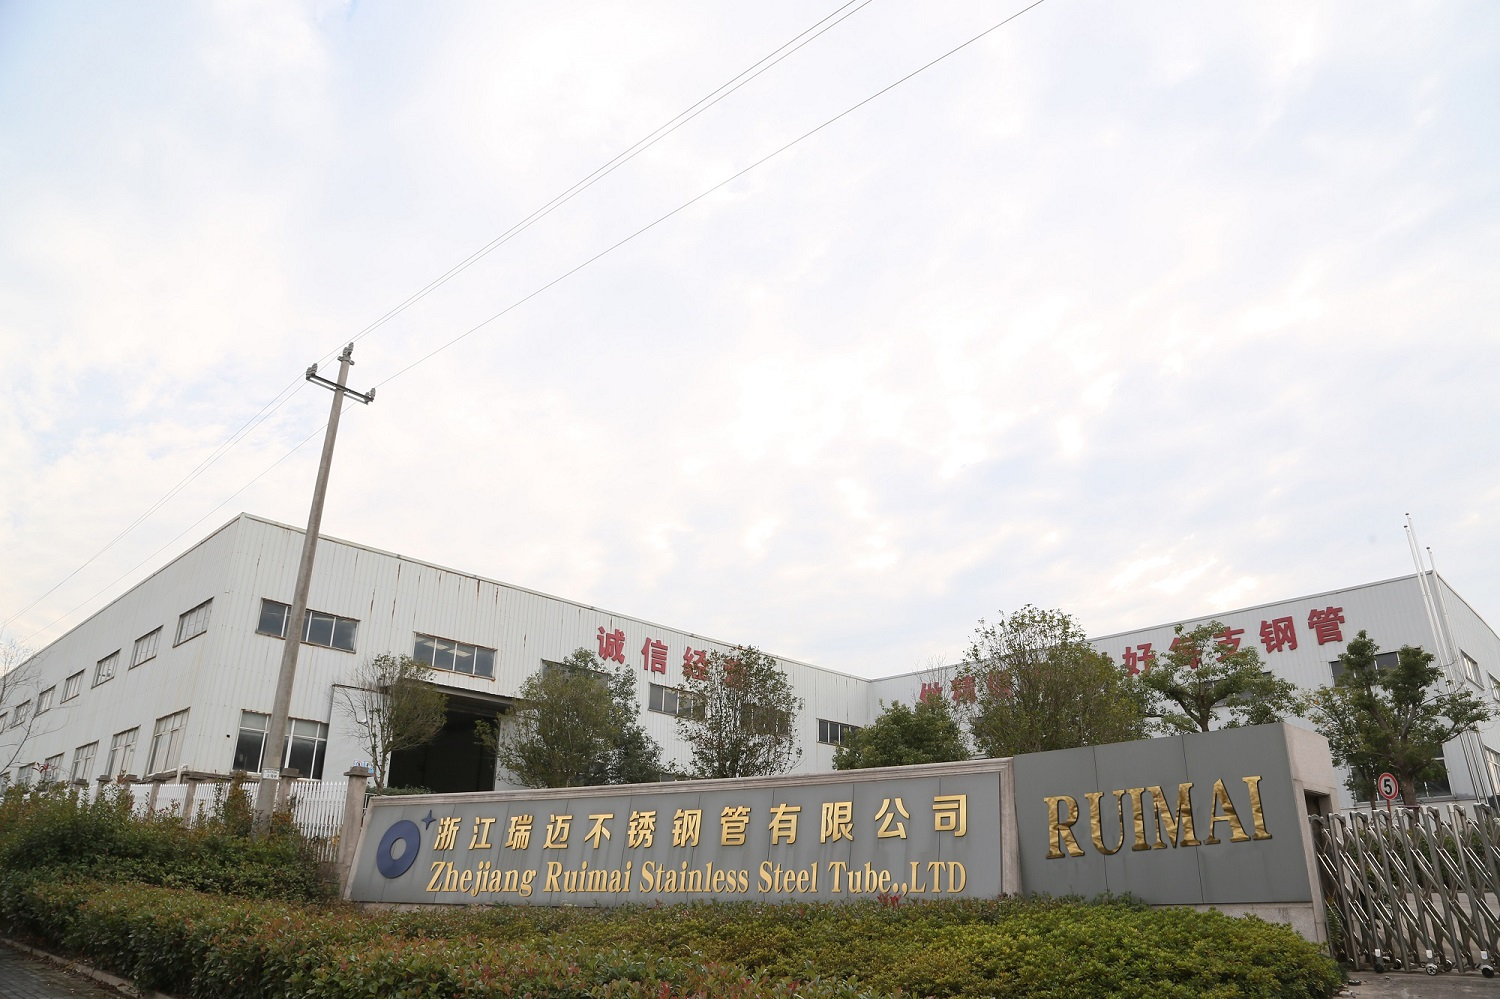 Zhejiang Ruimai Stainless steel Tube Co.,Ltd.